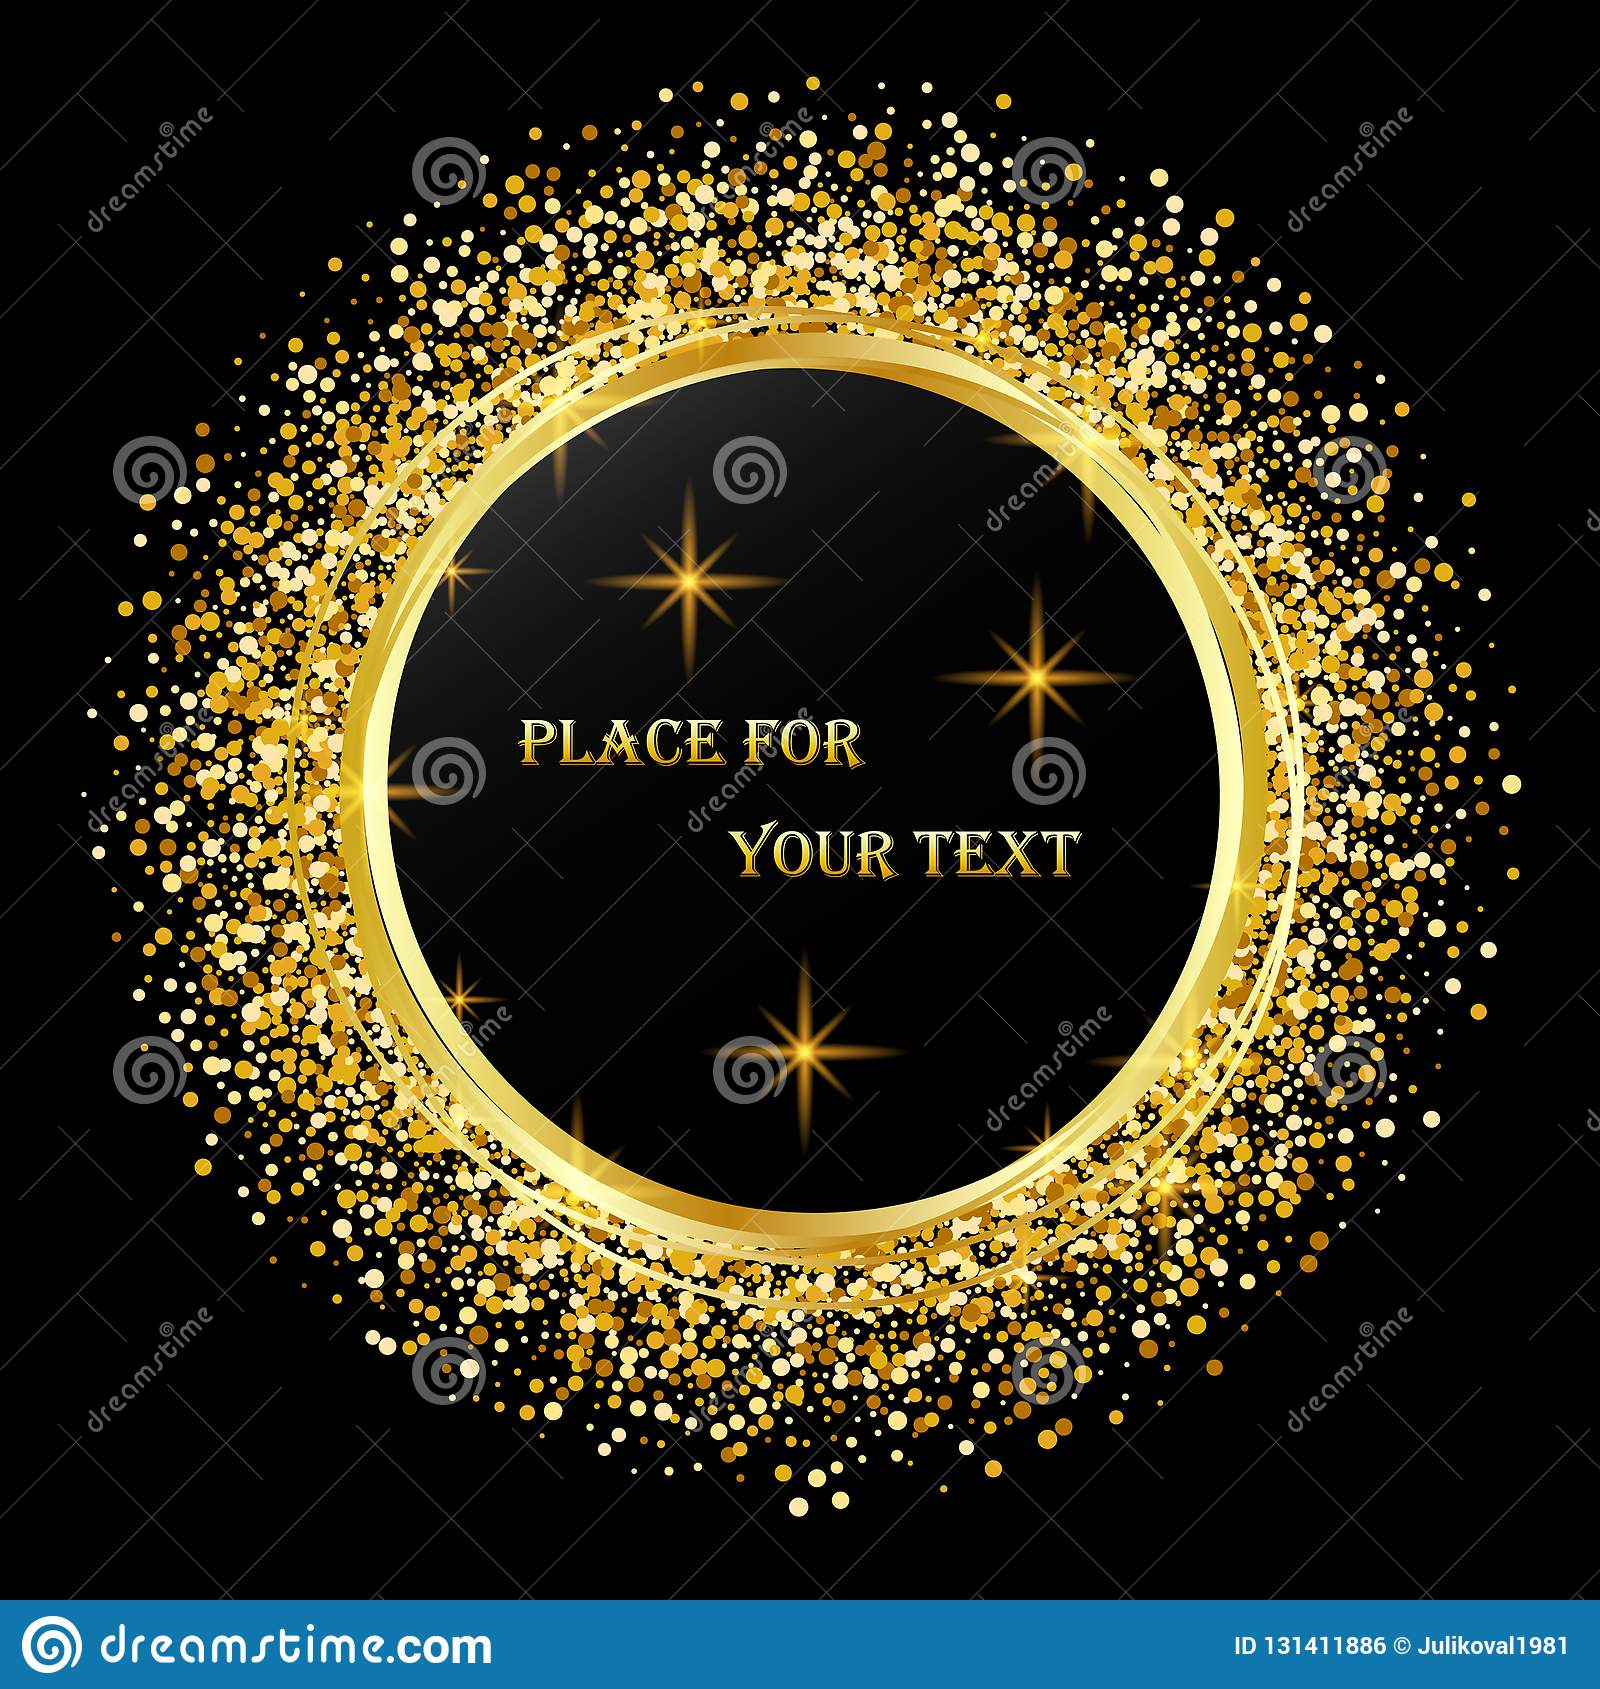 Black And Gold Background With Circle Frame And Space For Text Vector Glitter Decoration Golden Dust Stock Vector Illustration Of Golden Invitation 131411886